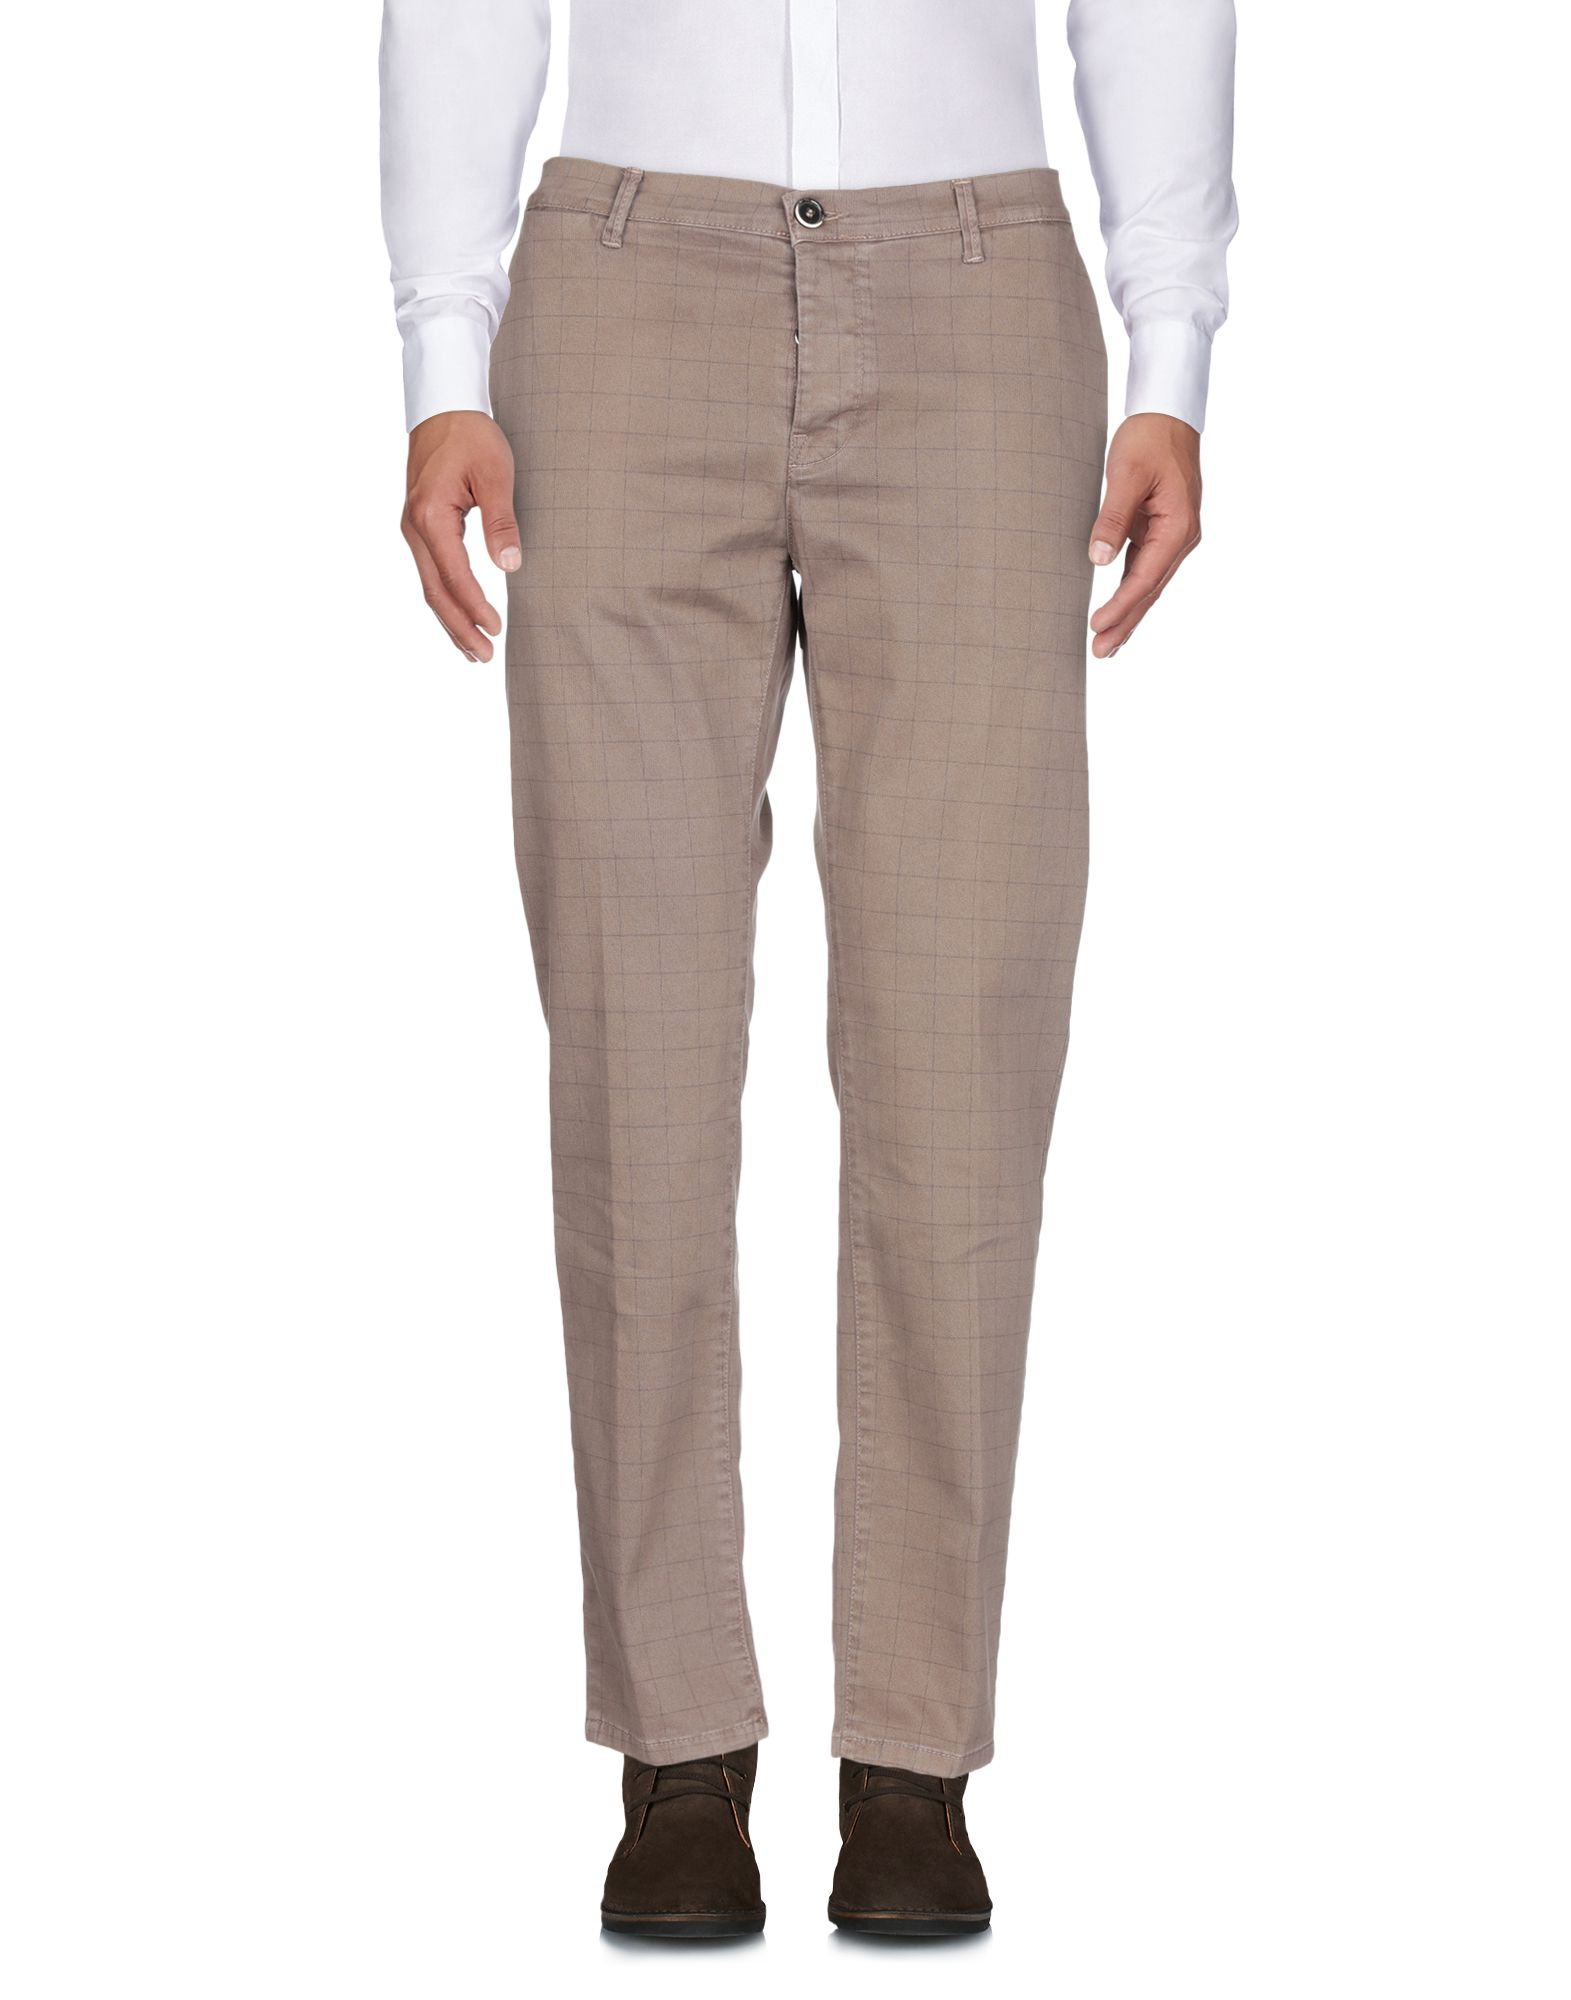 ADDICTION Casual Pants in Light Brown